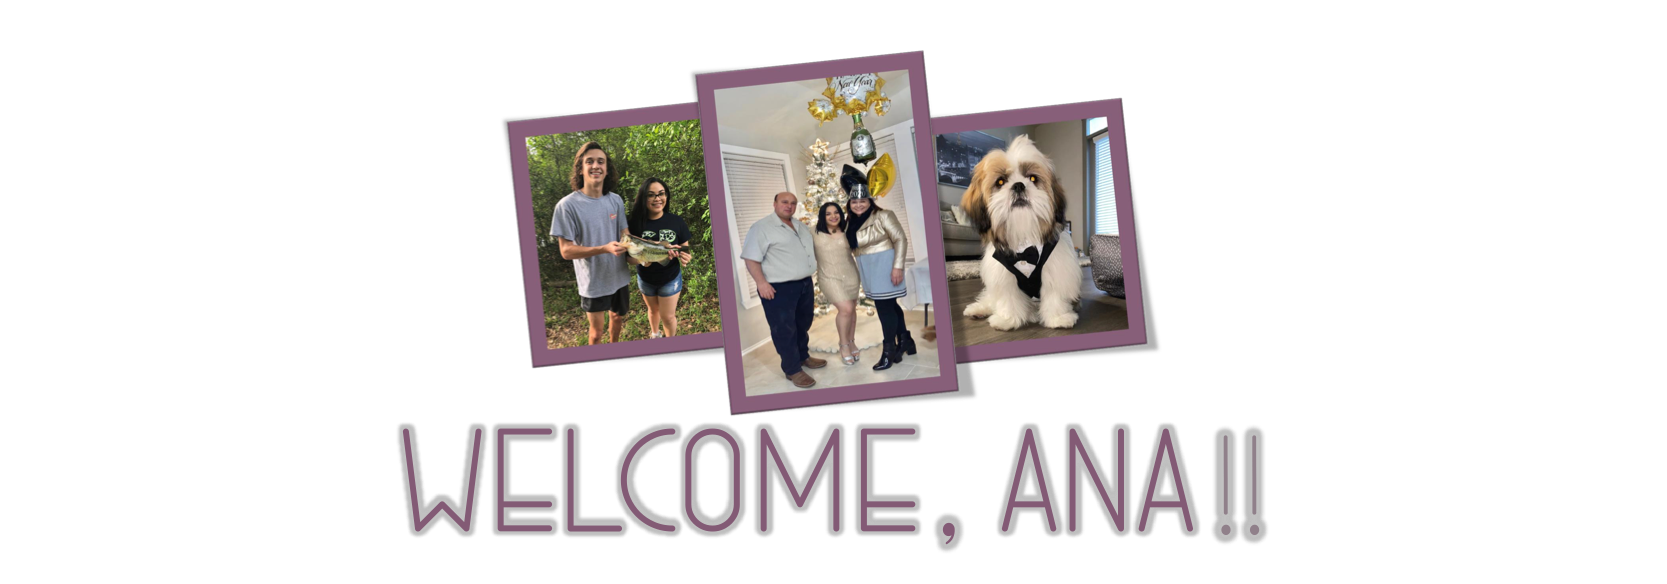 August 2021 Welcome Anna Banner